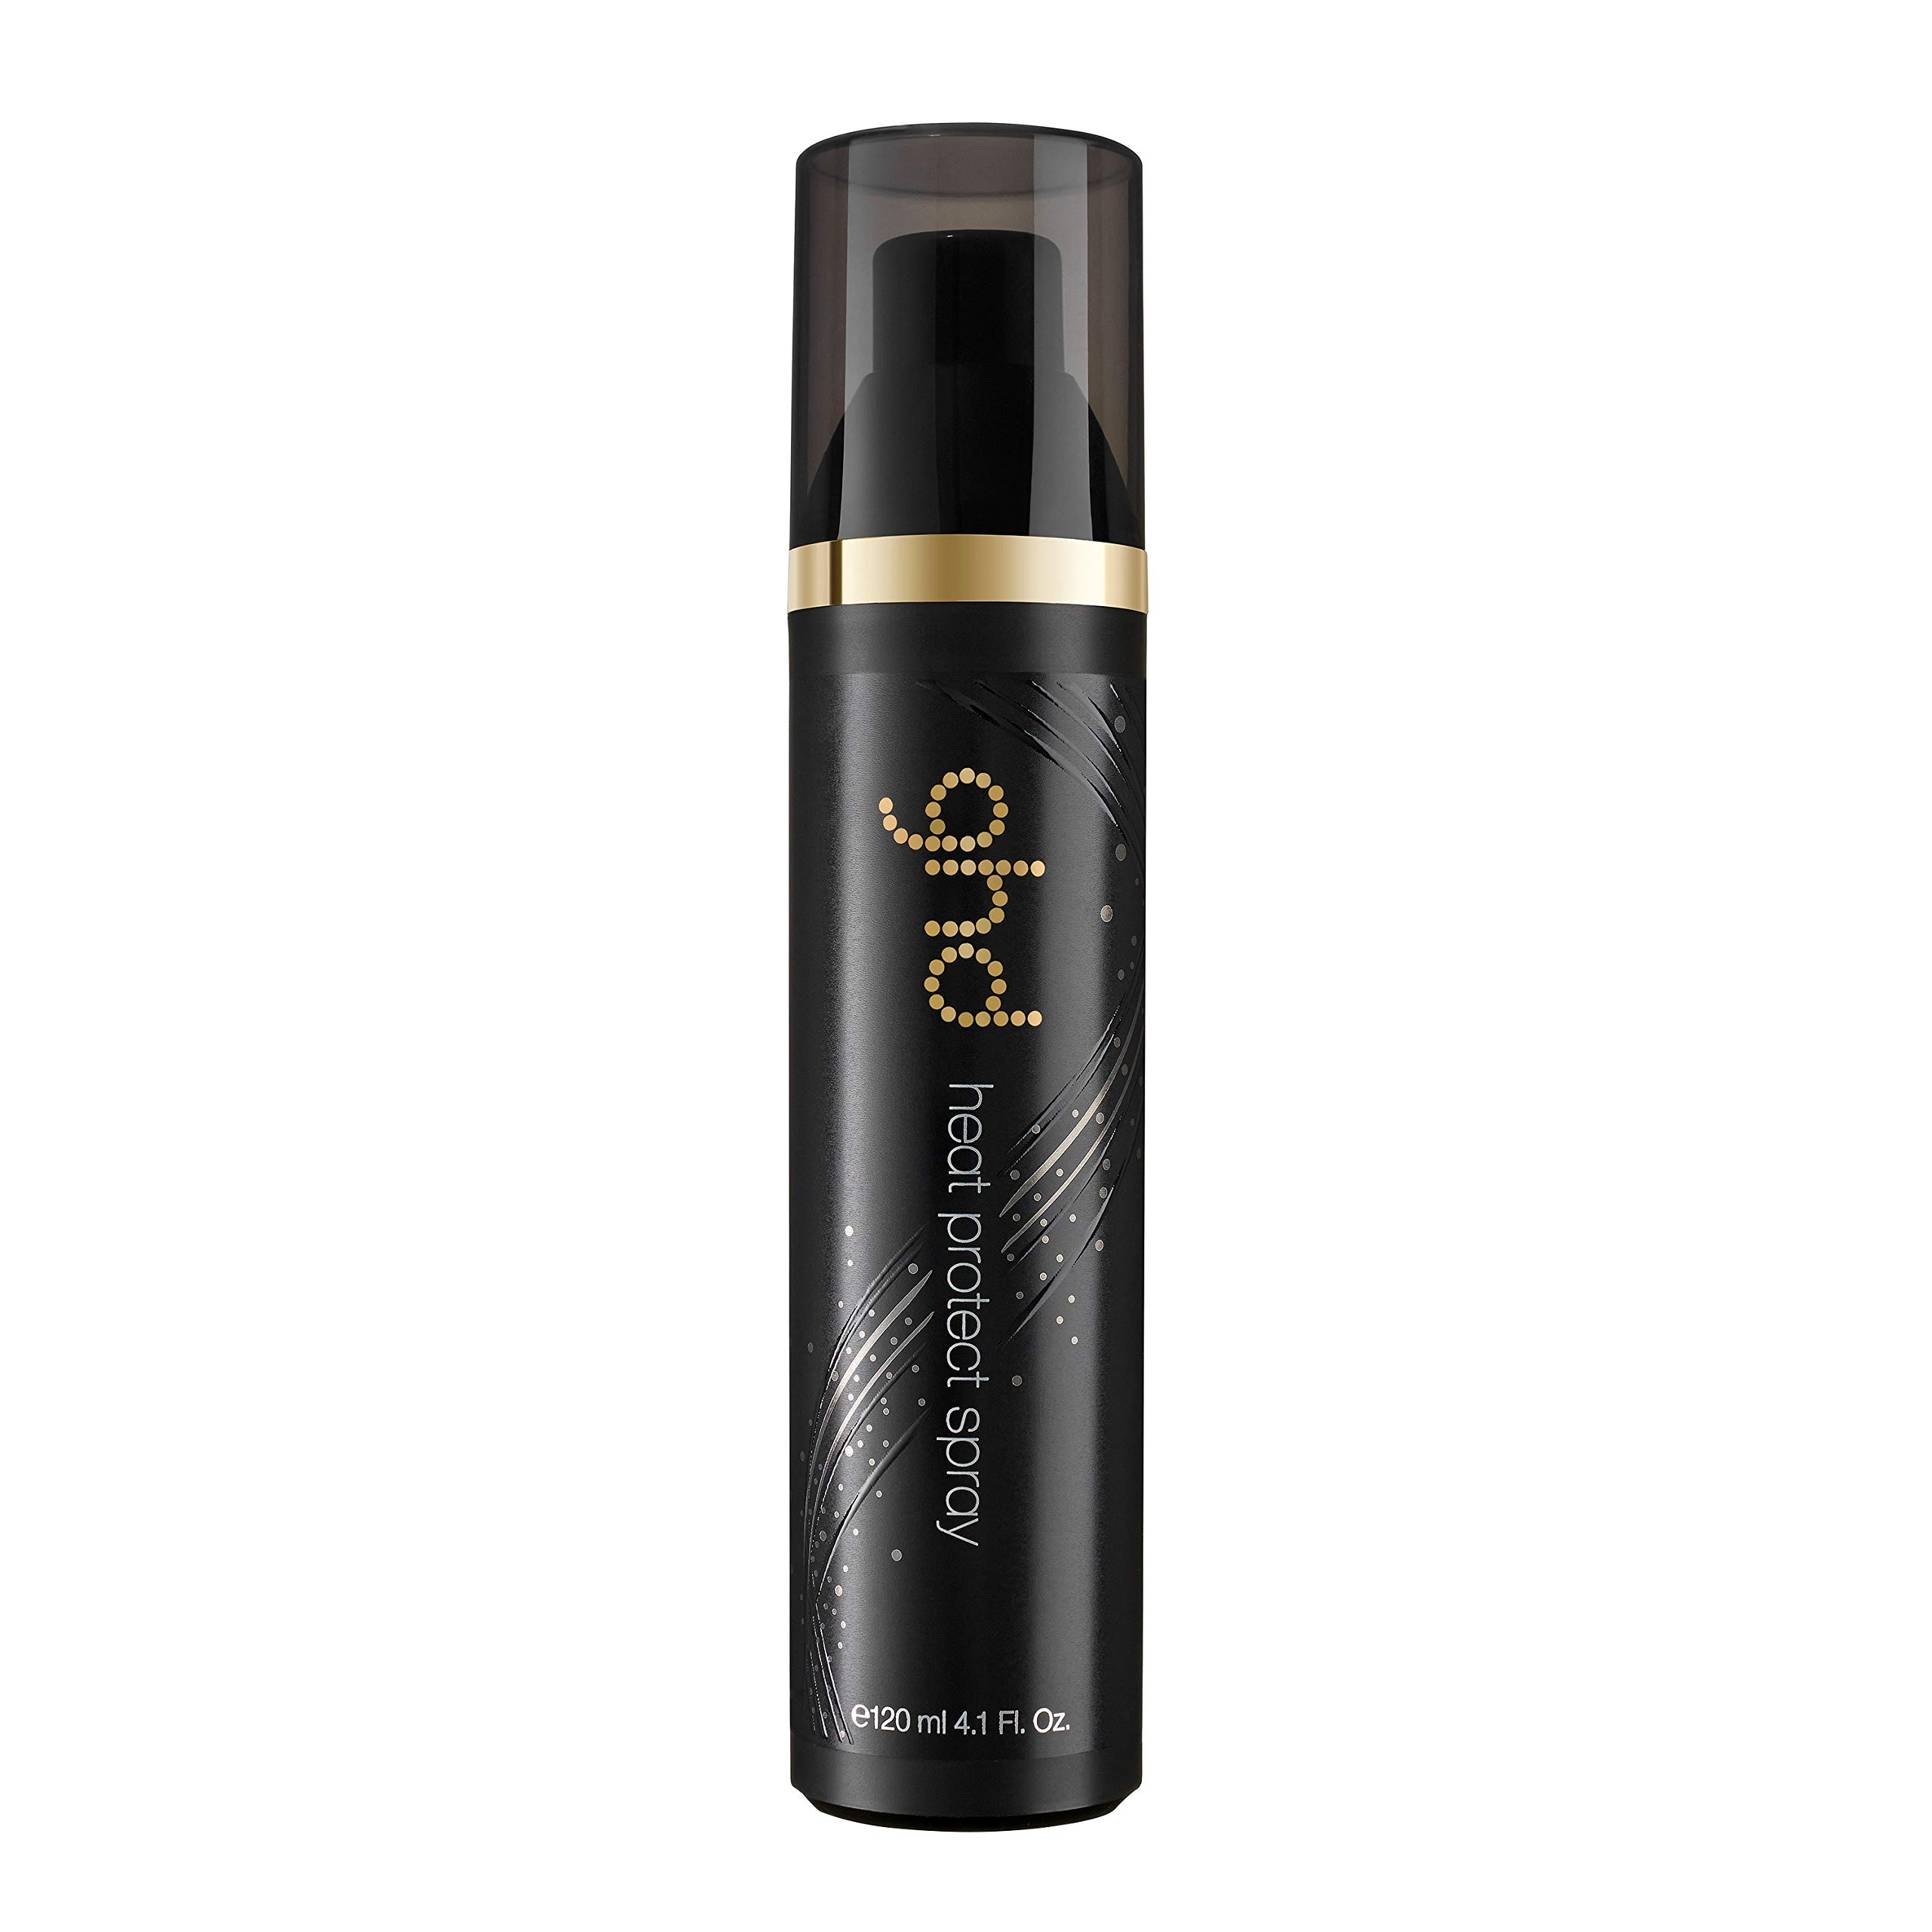 ghd Heat Protect Spray, 4 fl. oz.